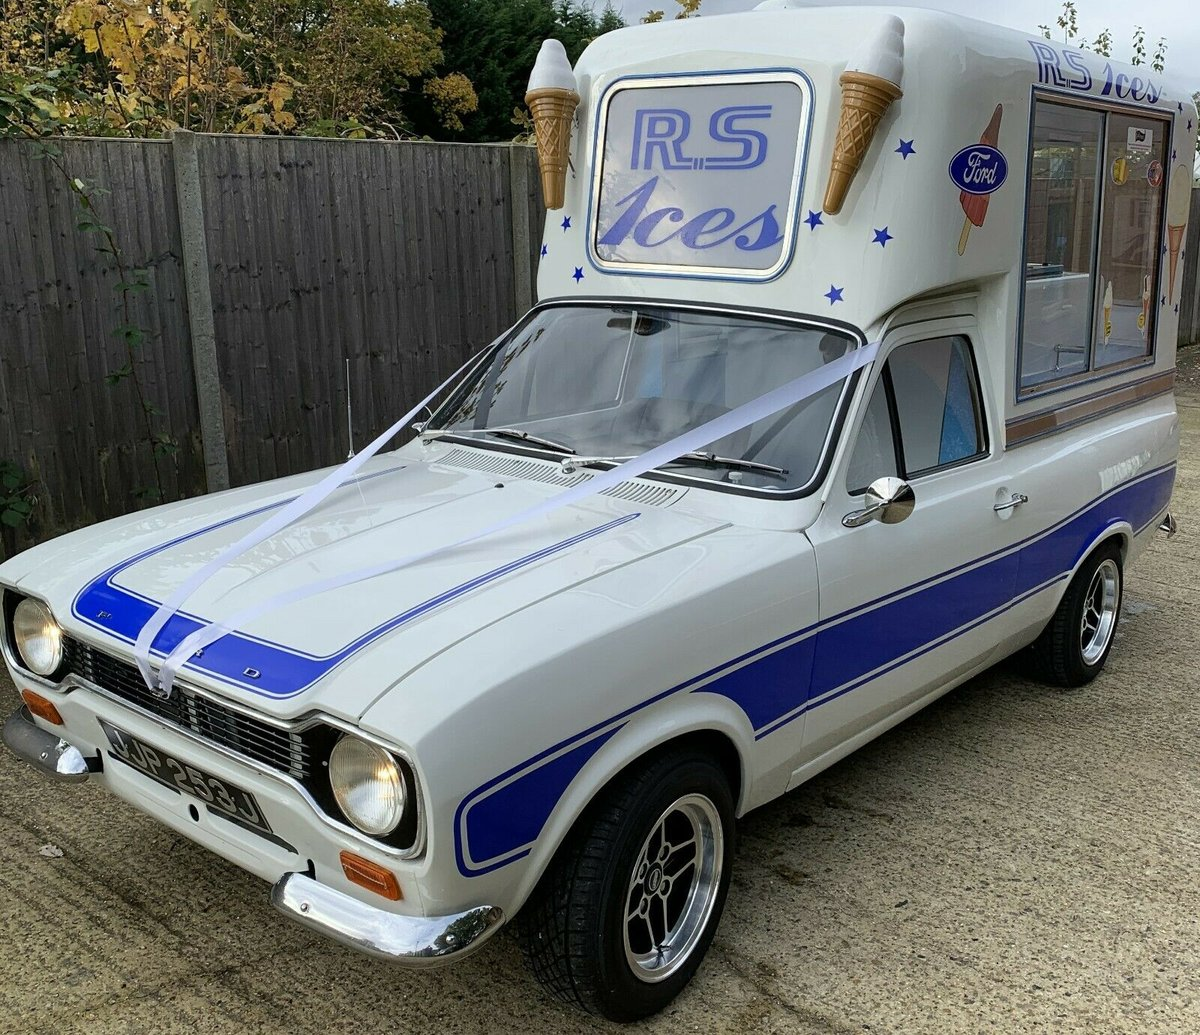 1971 Incredible MK1 Ford Escort Ice Cream Van For Sale (picture 1 of 6)